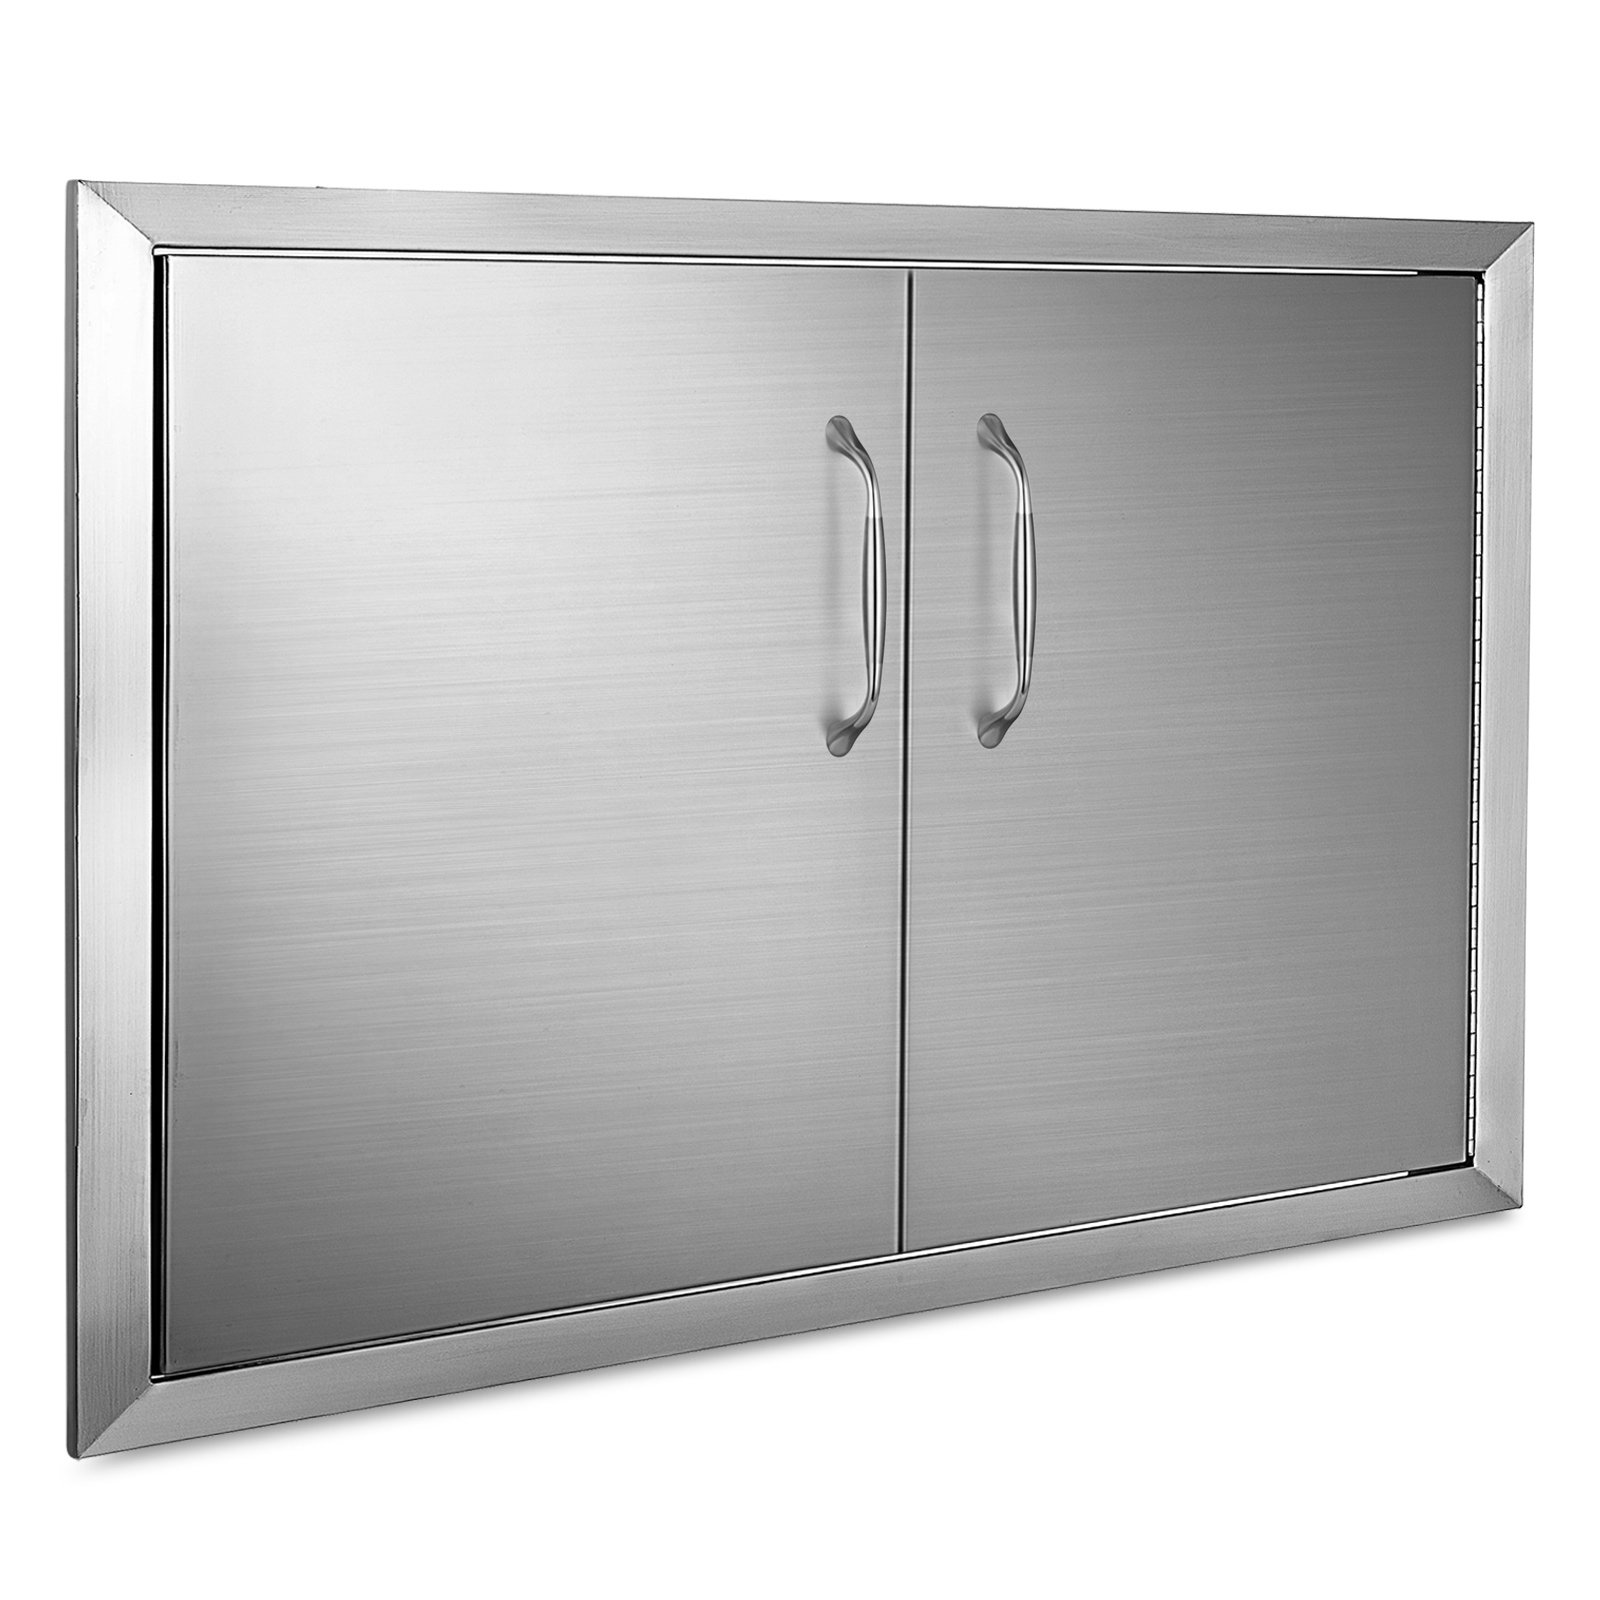 Mophorn Outdoor Kitchen Access Door 34'' x 19'' Double Wall Construction Stainless Steel Flush Mount for BBQ Island, 34inch x 19inch, by Mophorn